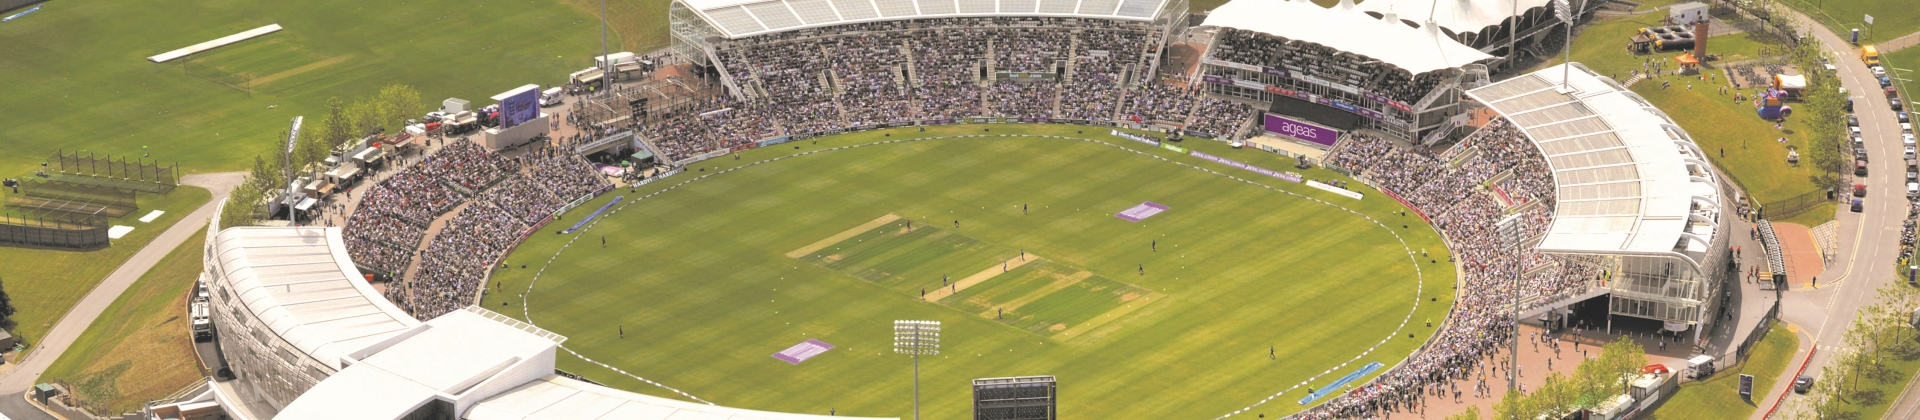 The Ageas Bowl Becomes First Samsung Fully Connected